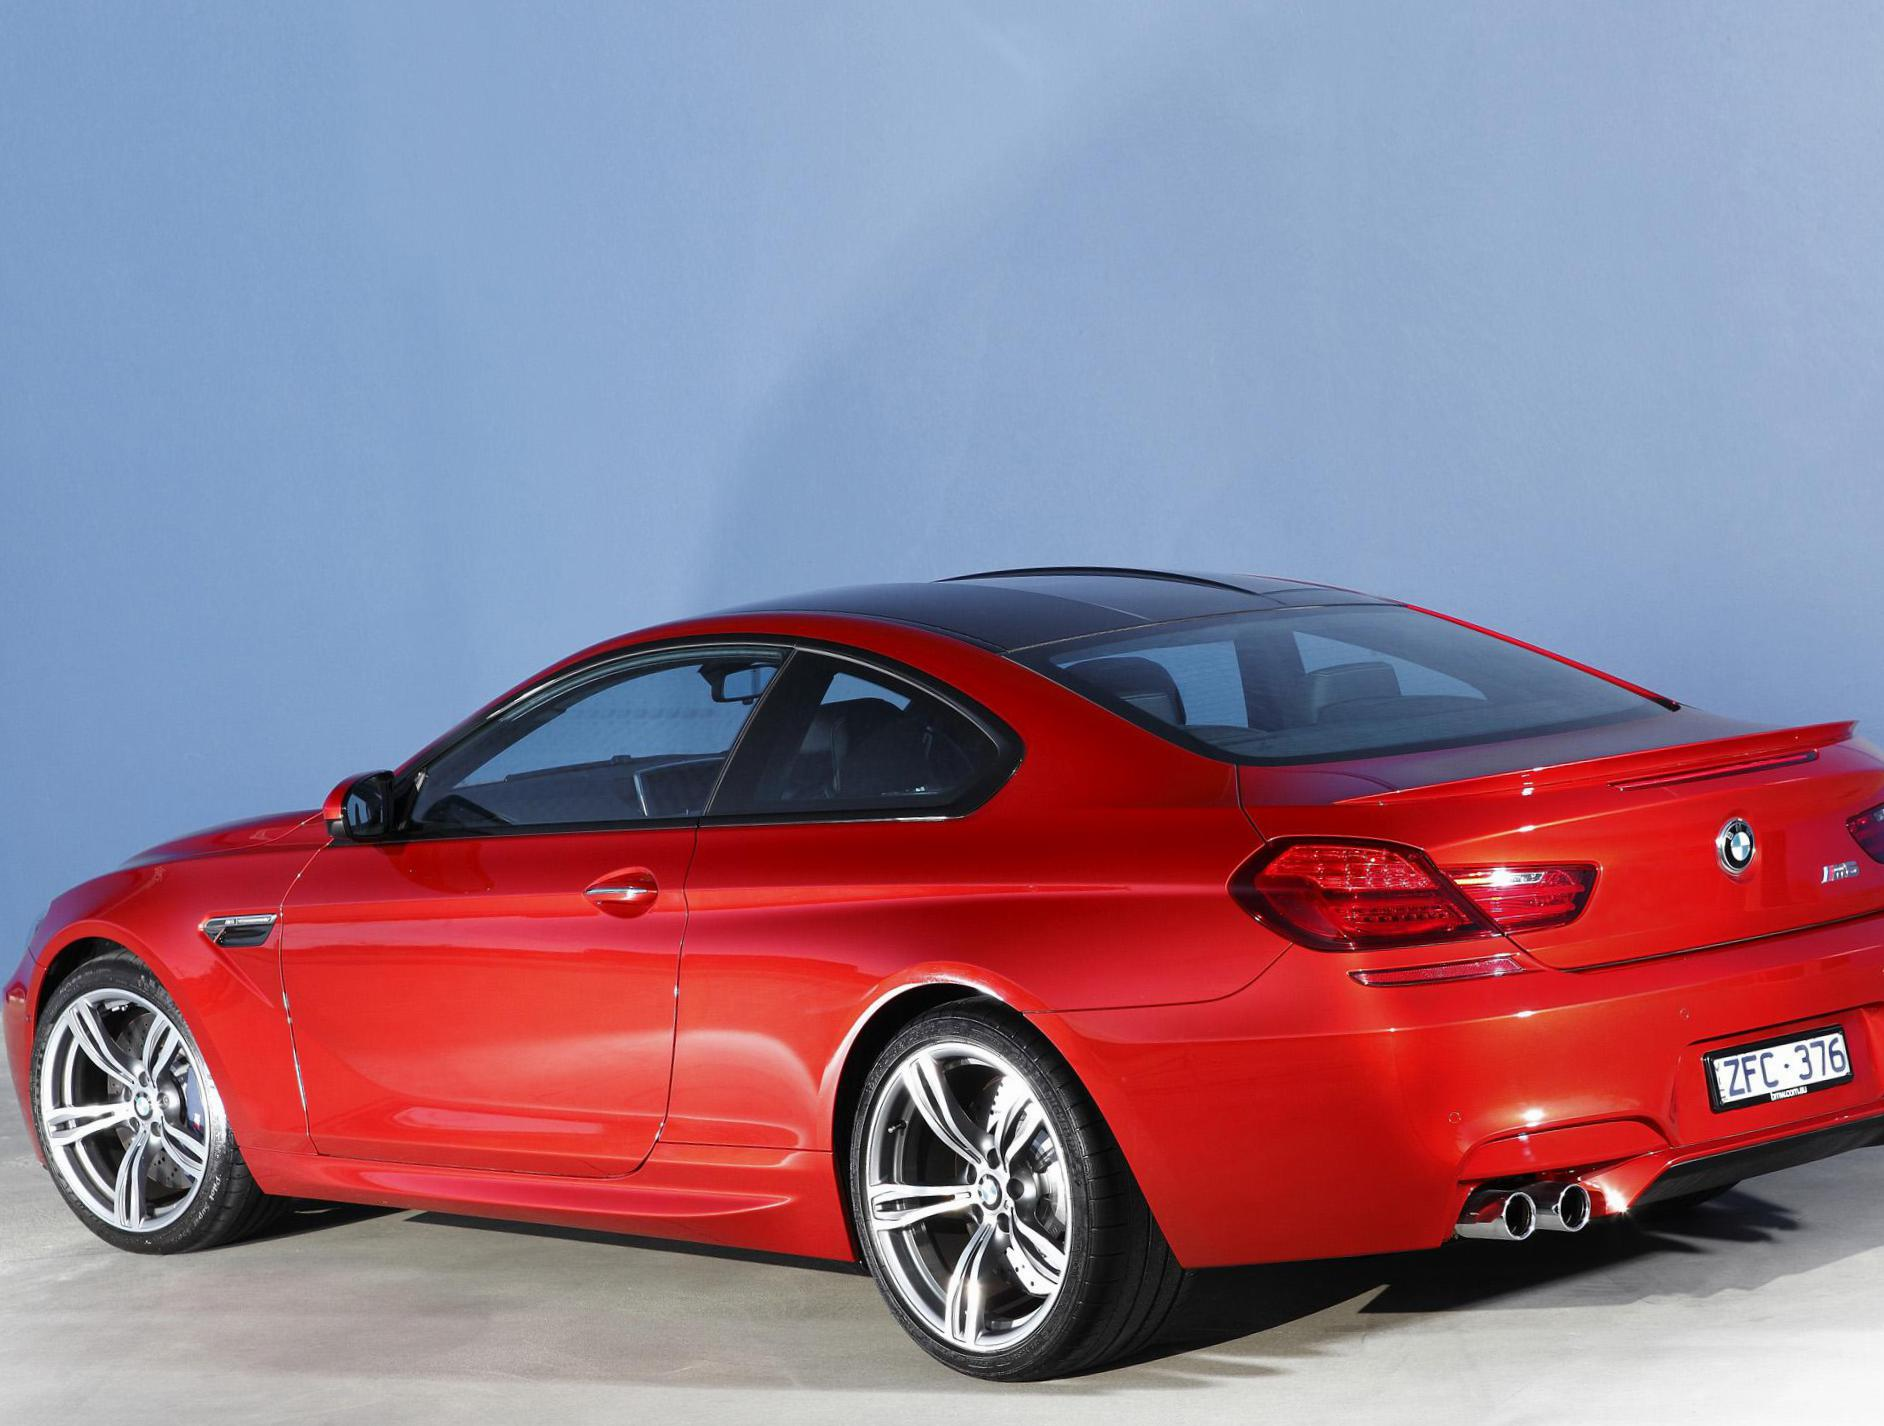 BMW M6 Coupe (F13) model 2009